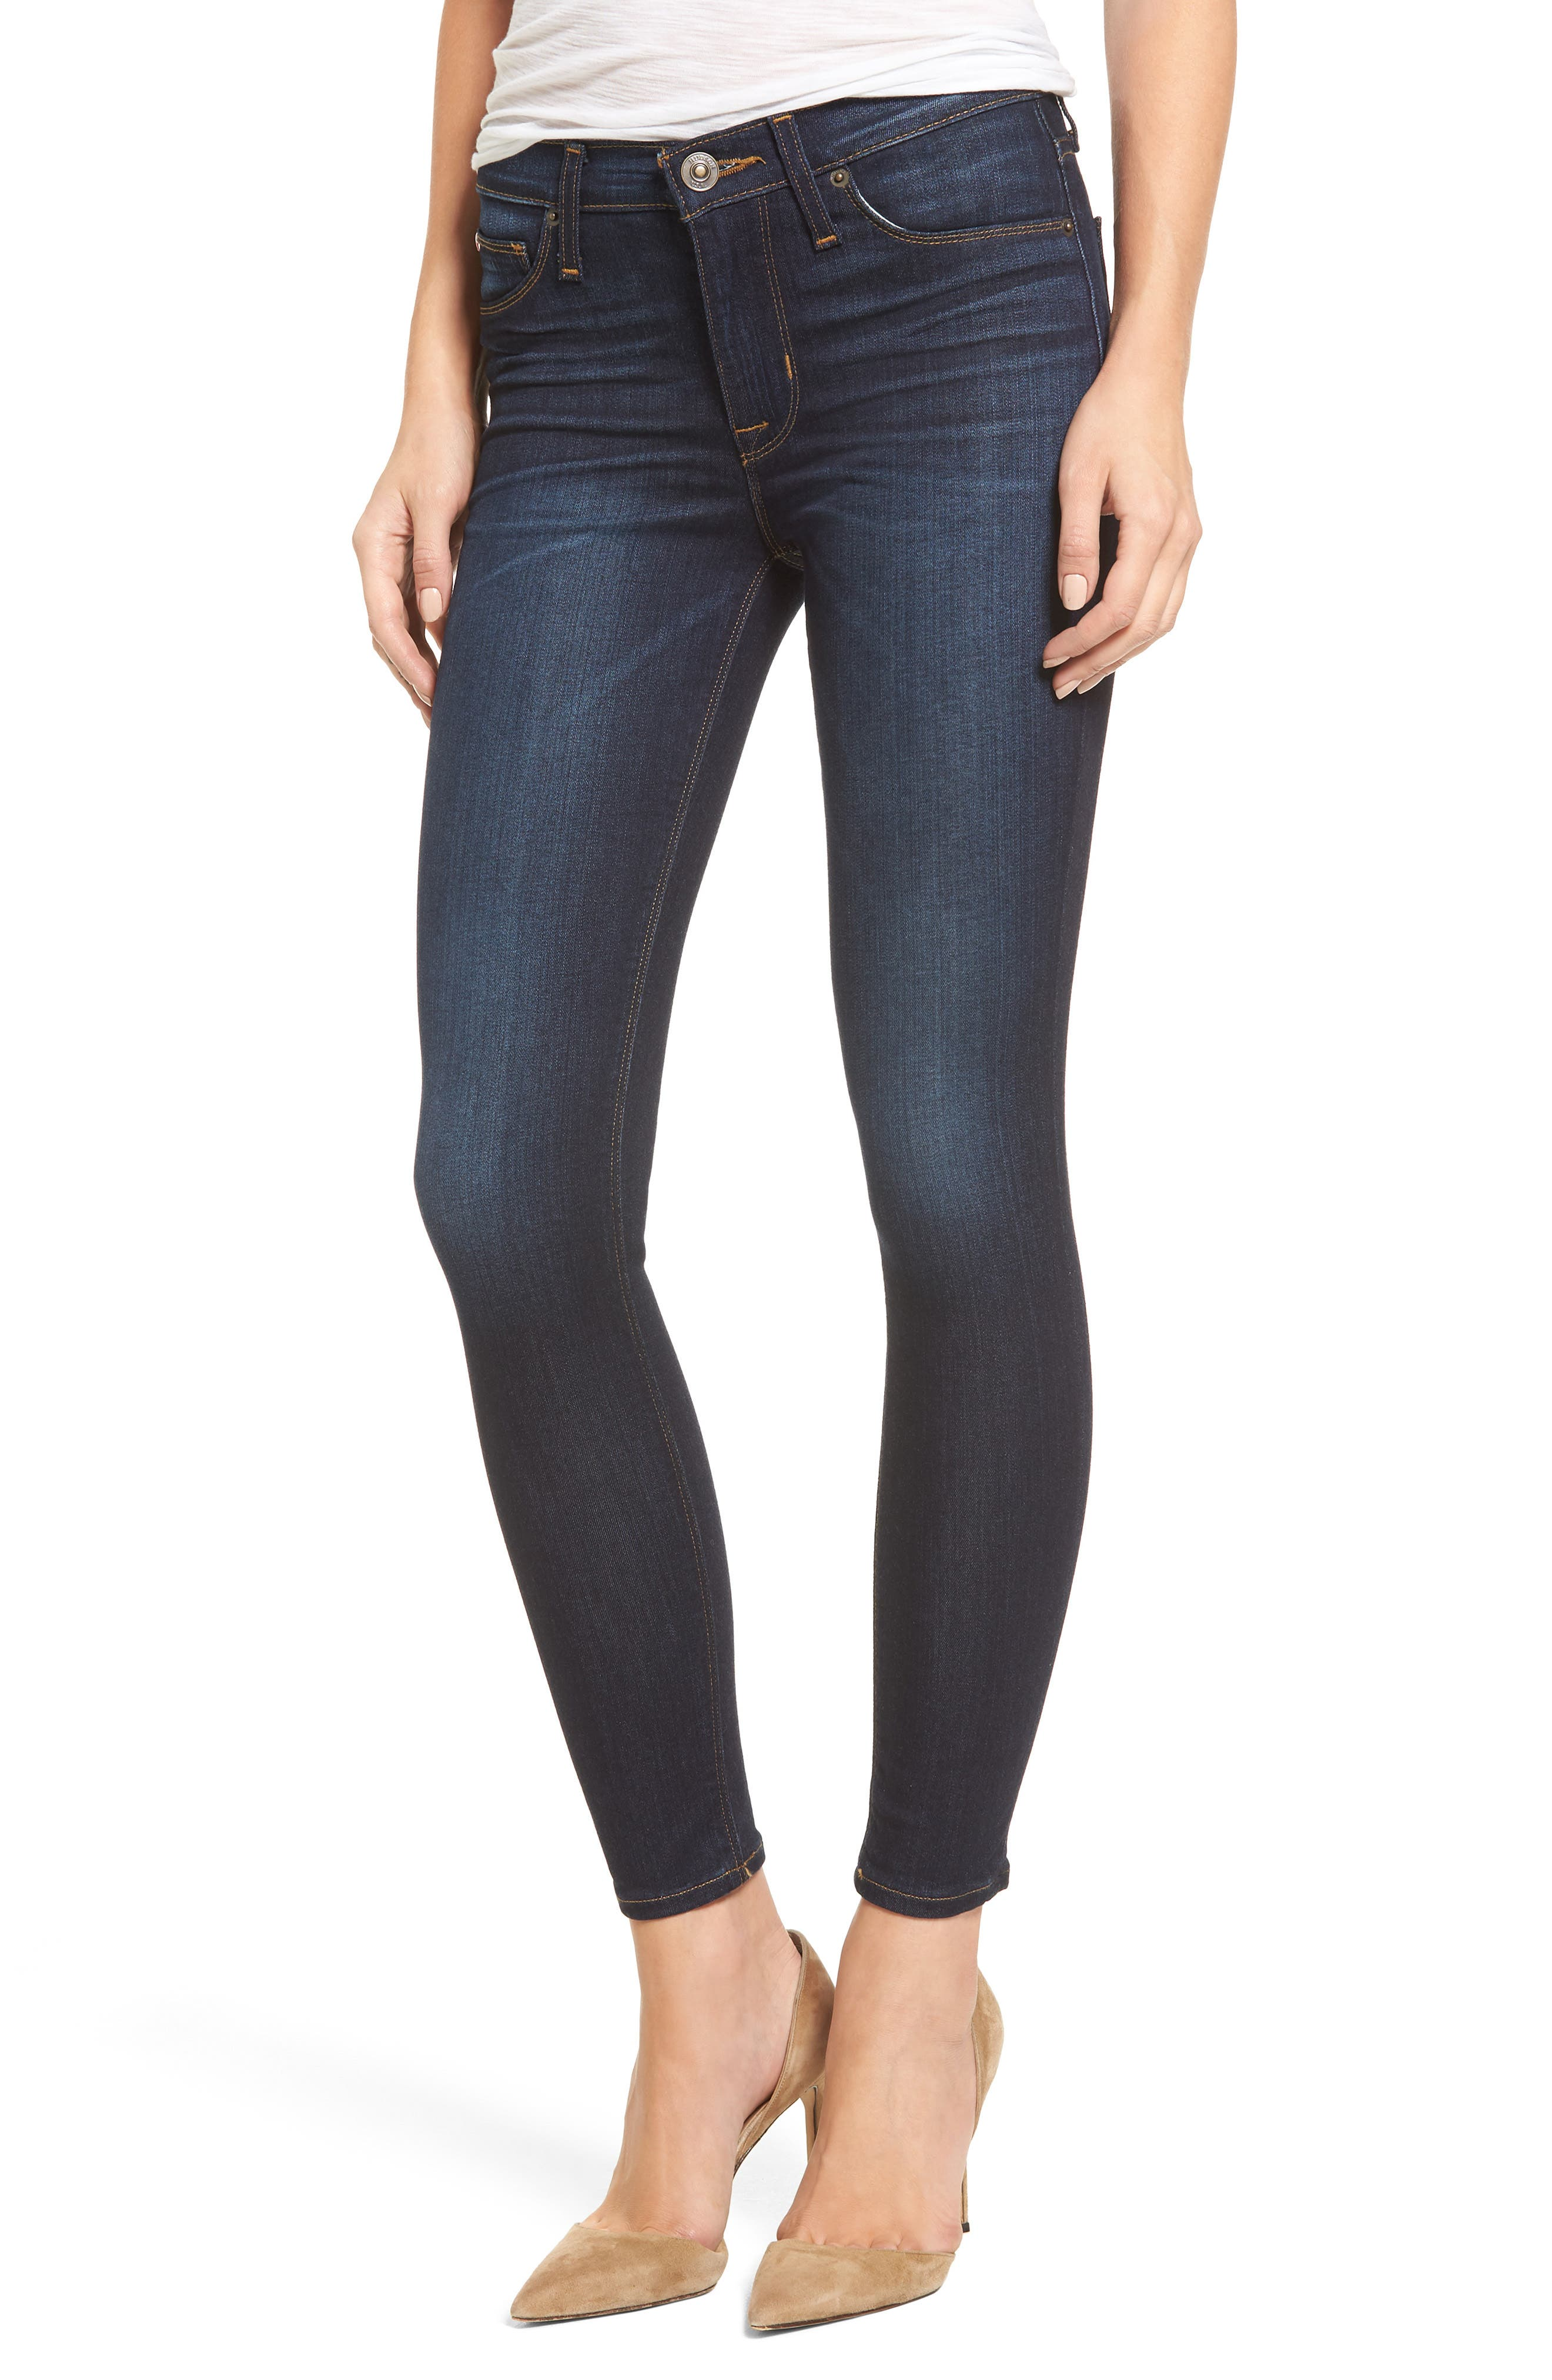 Alternate Image 1 Selected - Hudson Jeans 'Nico' Ankle Super Skinny Jeans (Electrify)